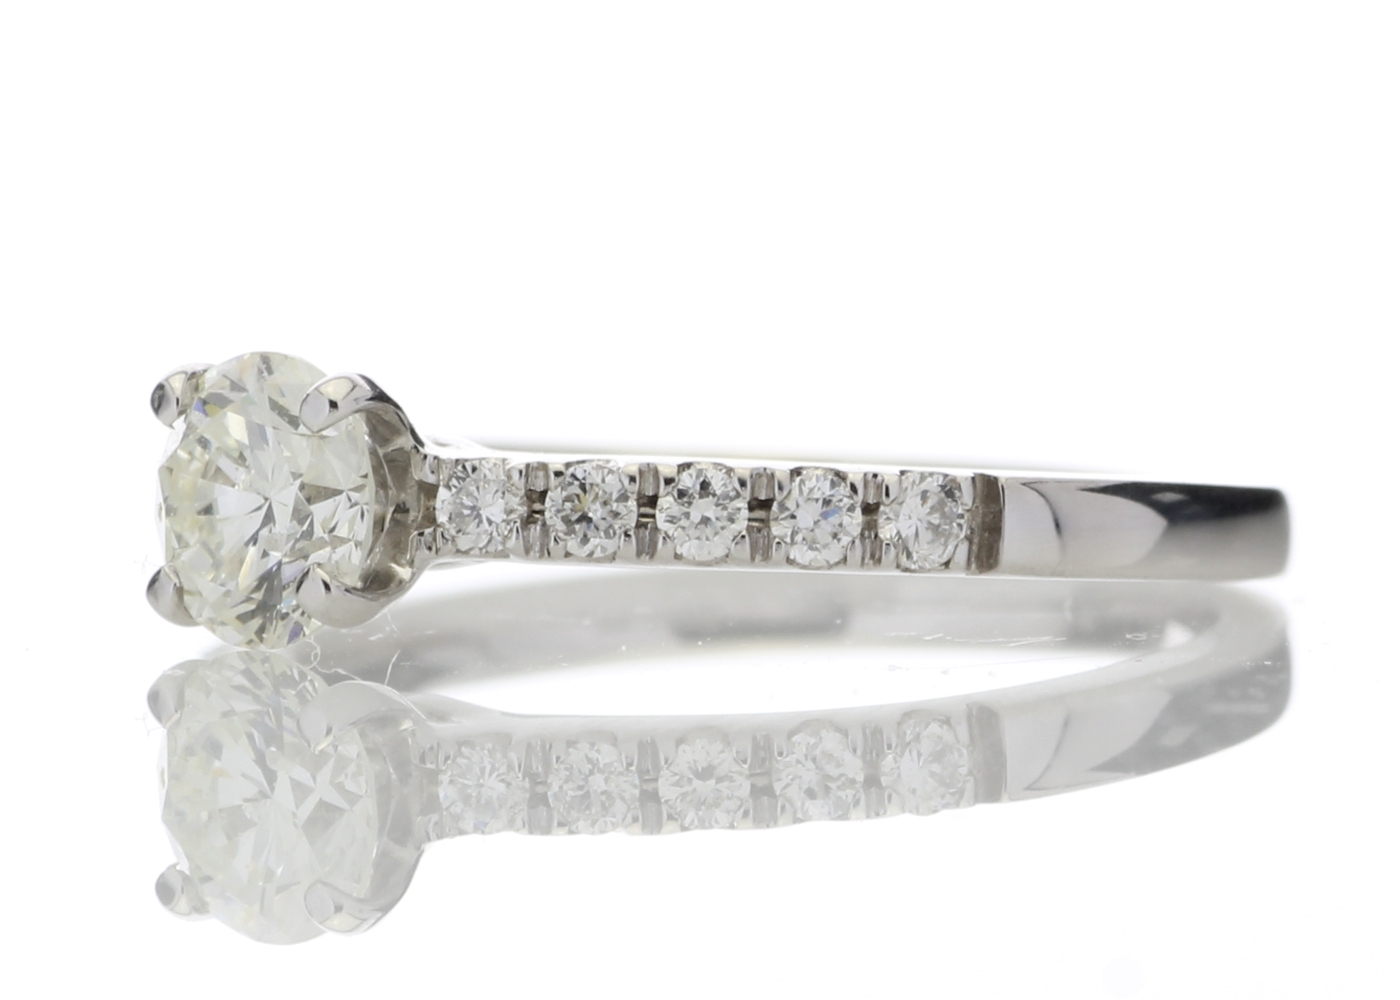 Lot 17 - 18ct Stone Set Shoulders Diamond Ring 0.69 Carats